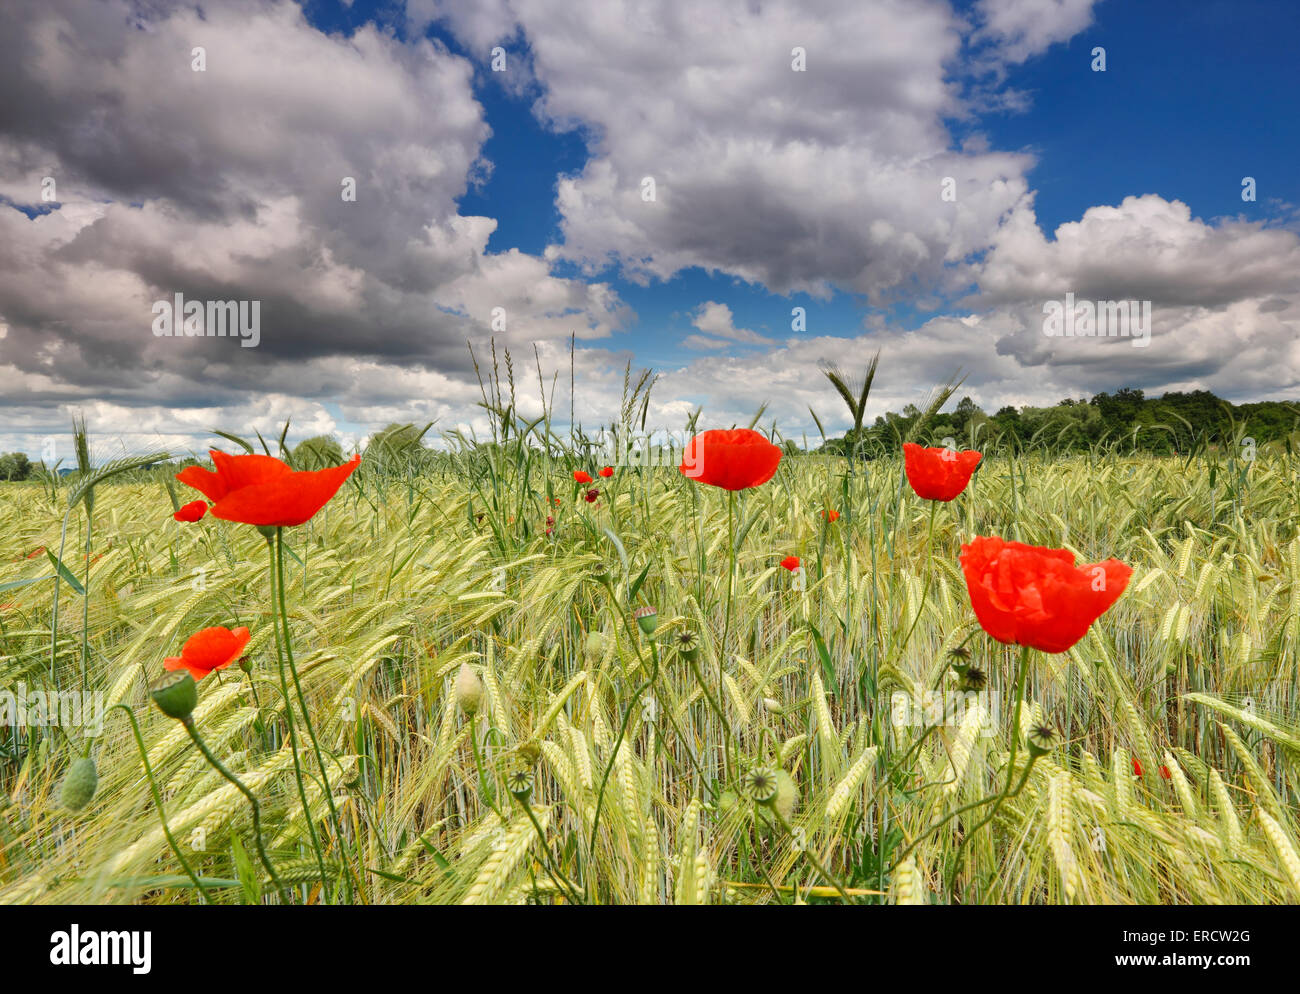 Poppies in wheat field with beautiful sky clouds - Stock Image